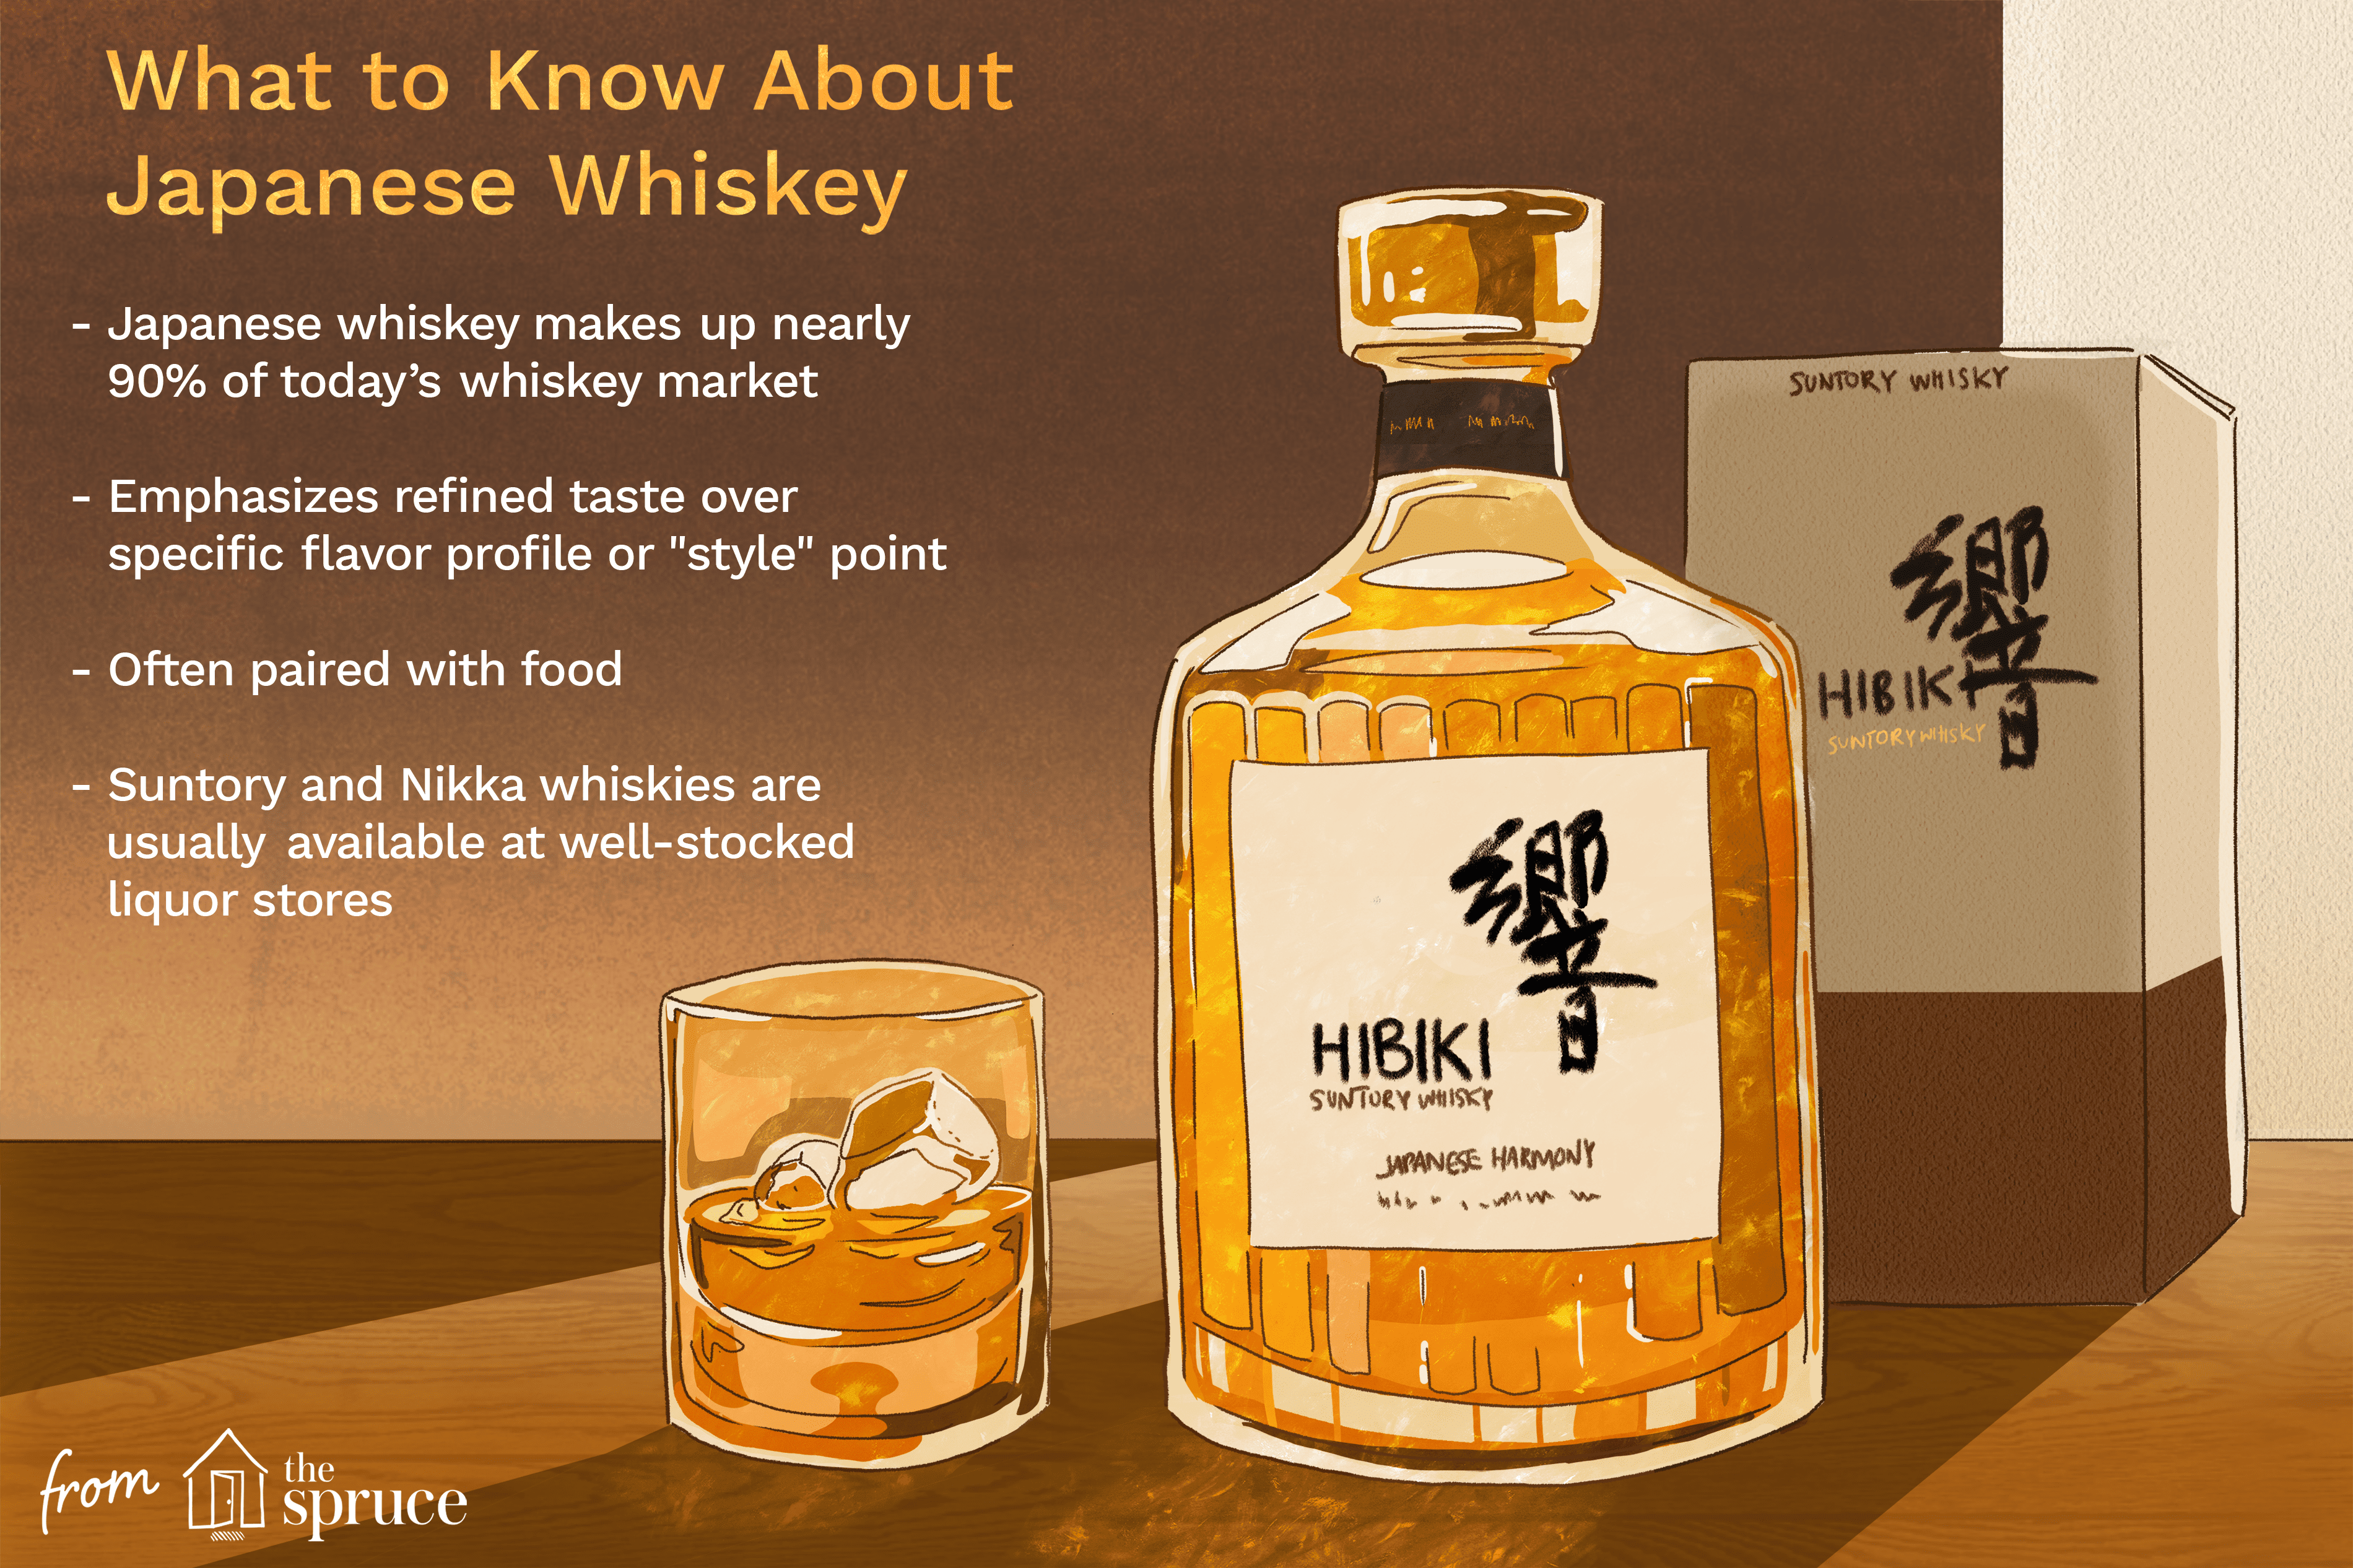 Japanese whisky rituals